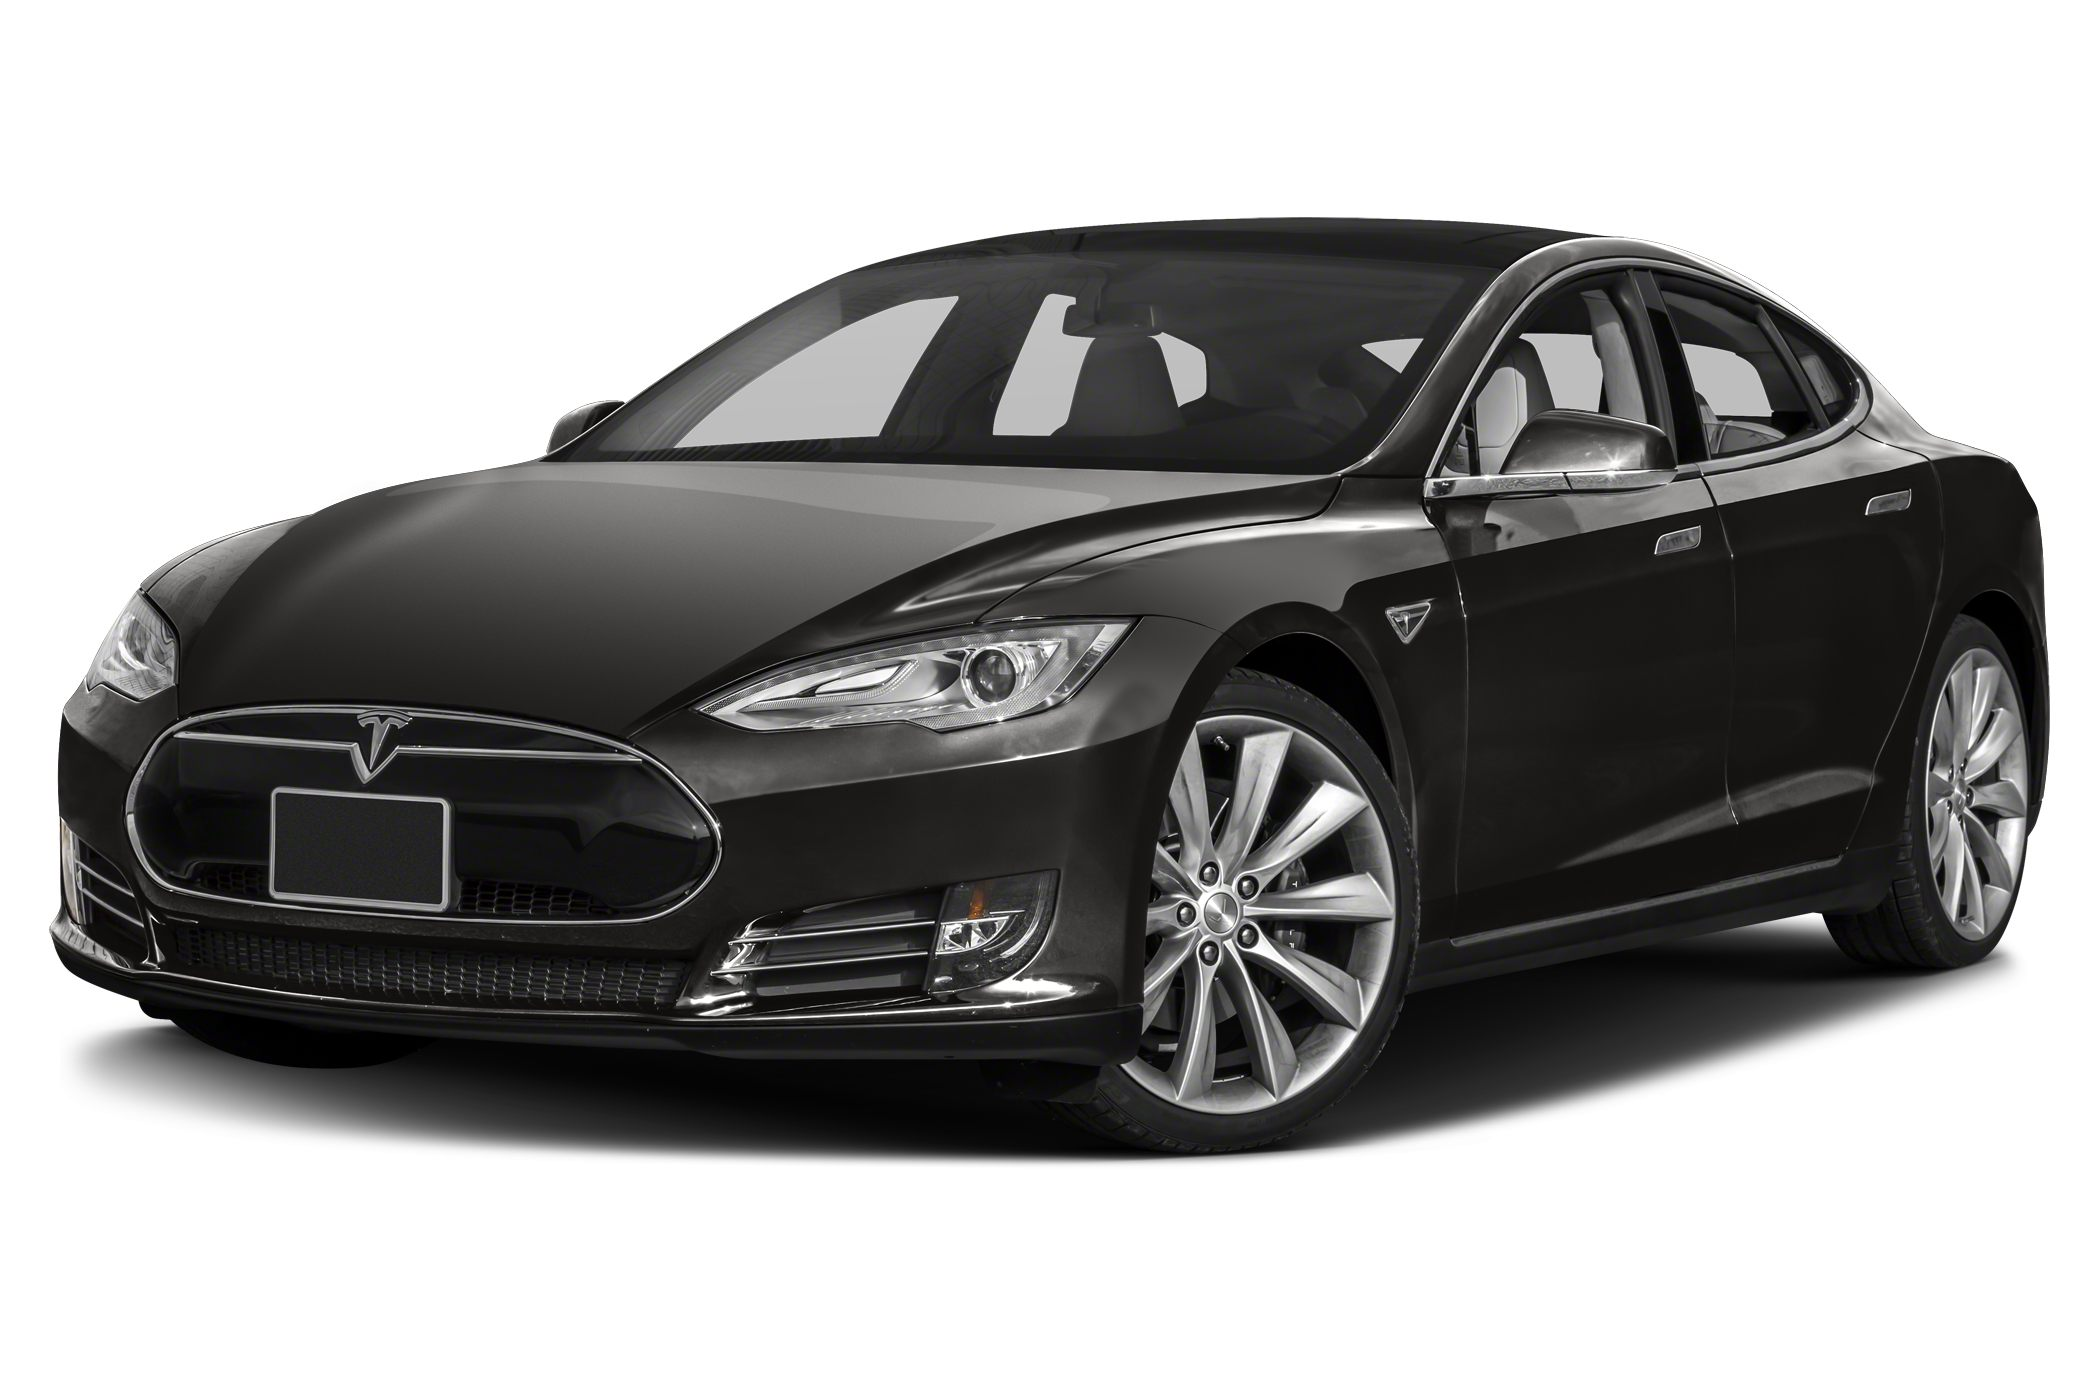 Image result for tesla model s